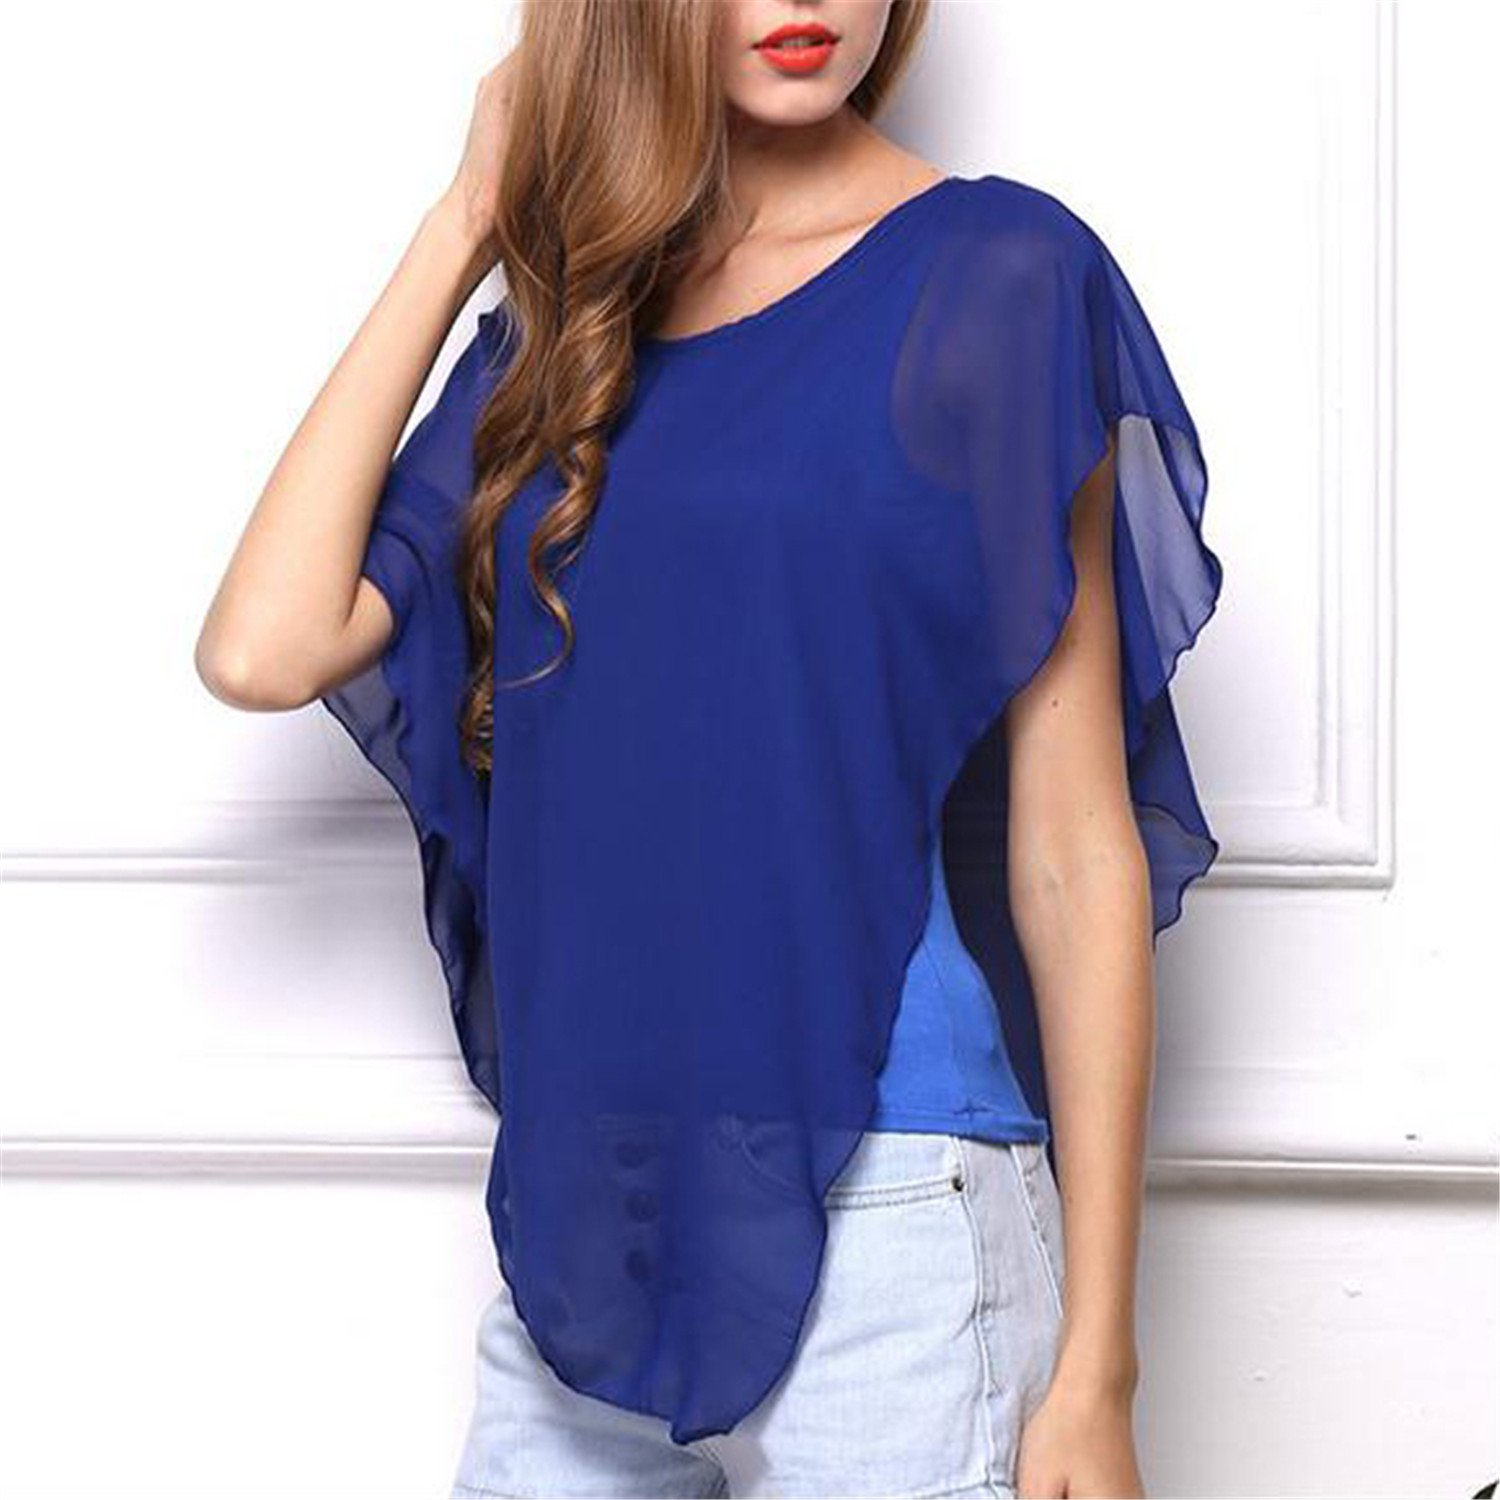 Casual Ruffle Chiffon Blouse Shirts Women Crew Neck Sleeveless Blouse Ladies Tops Loose Shirt at Amazon Womens Clothing store: